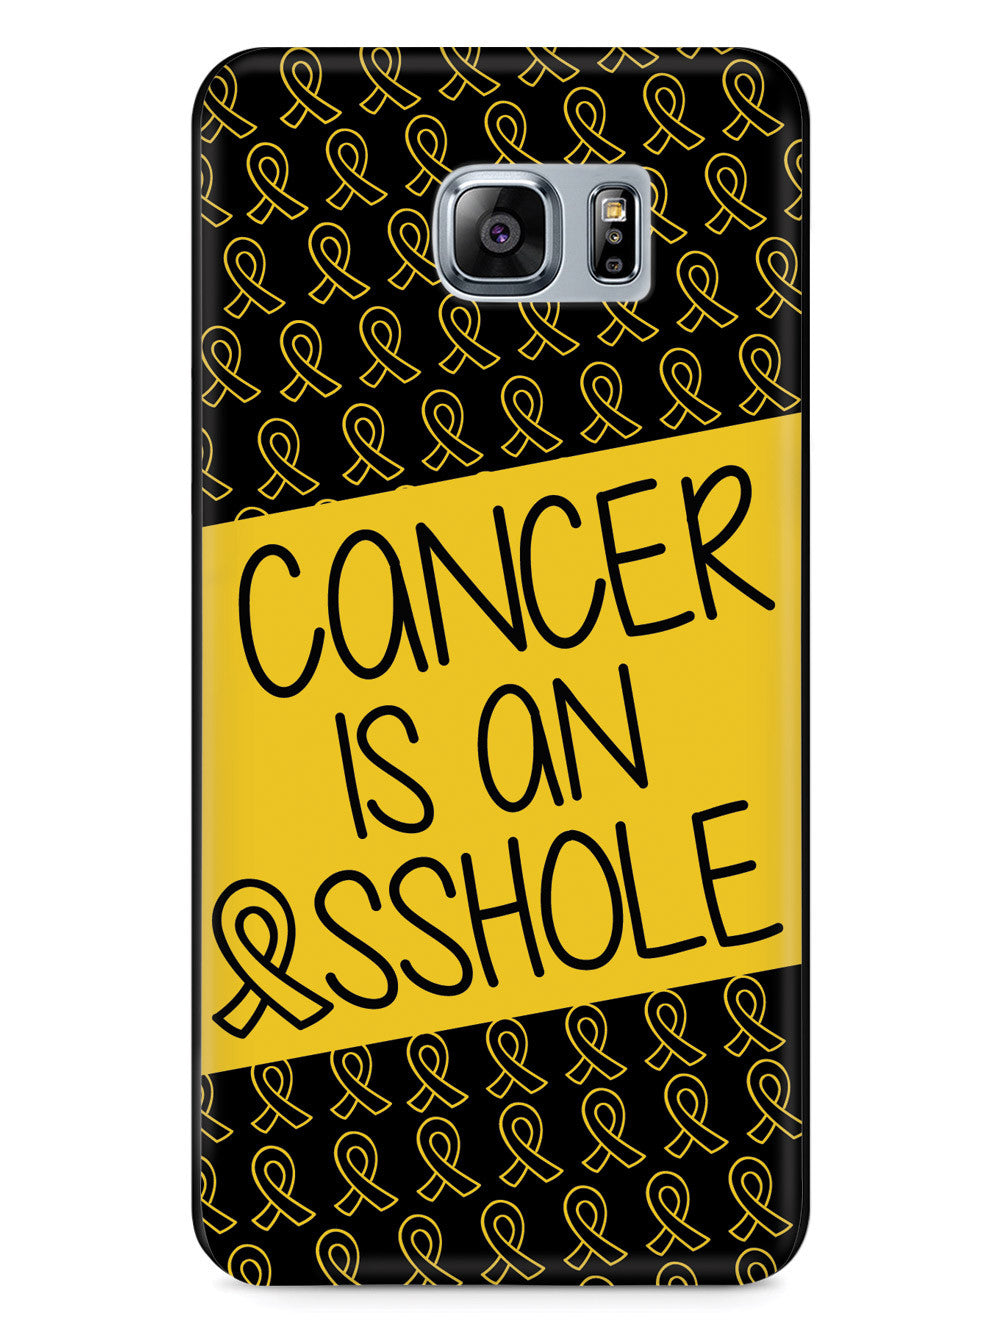 Cancer is an ASSHOLE Yellow Case